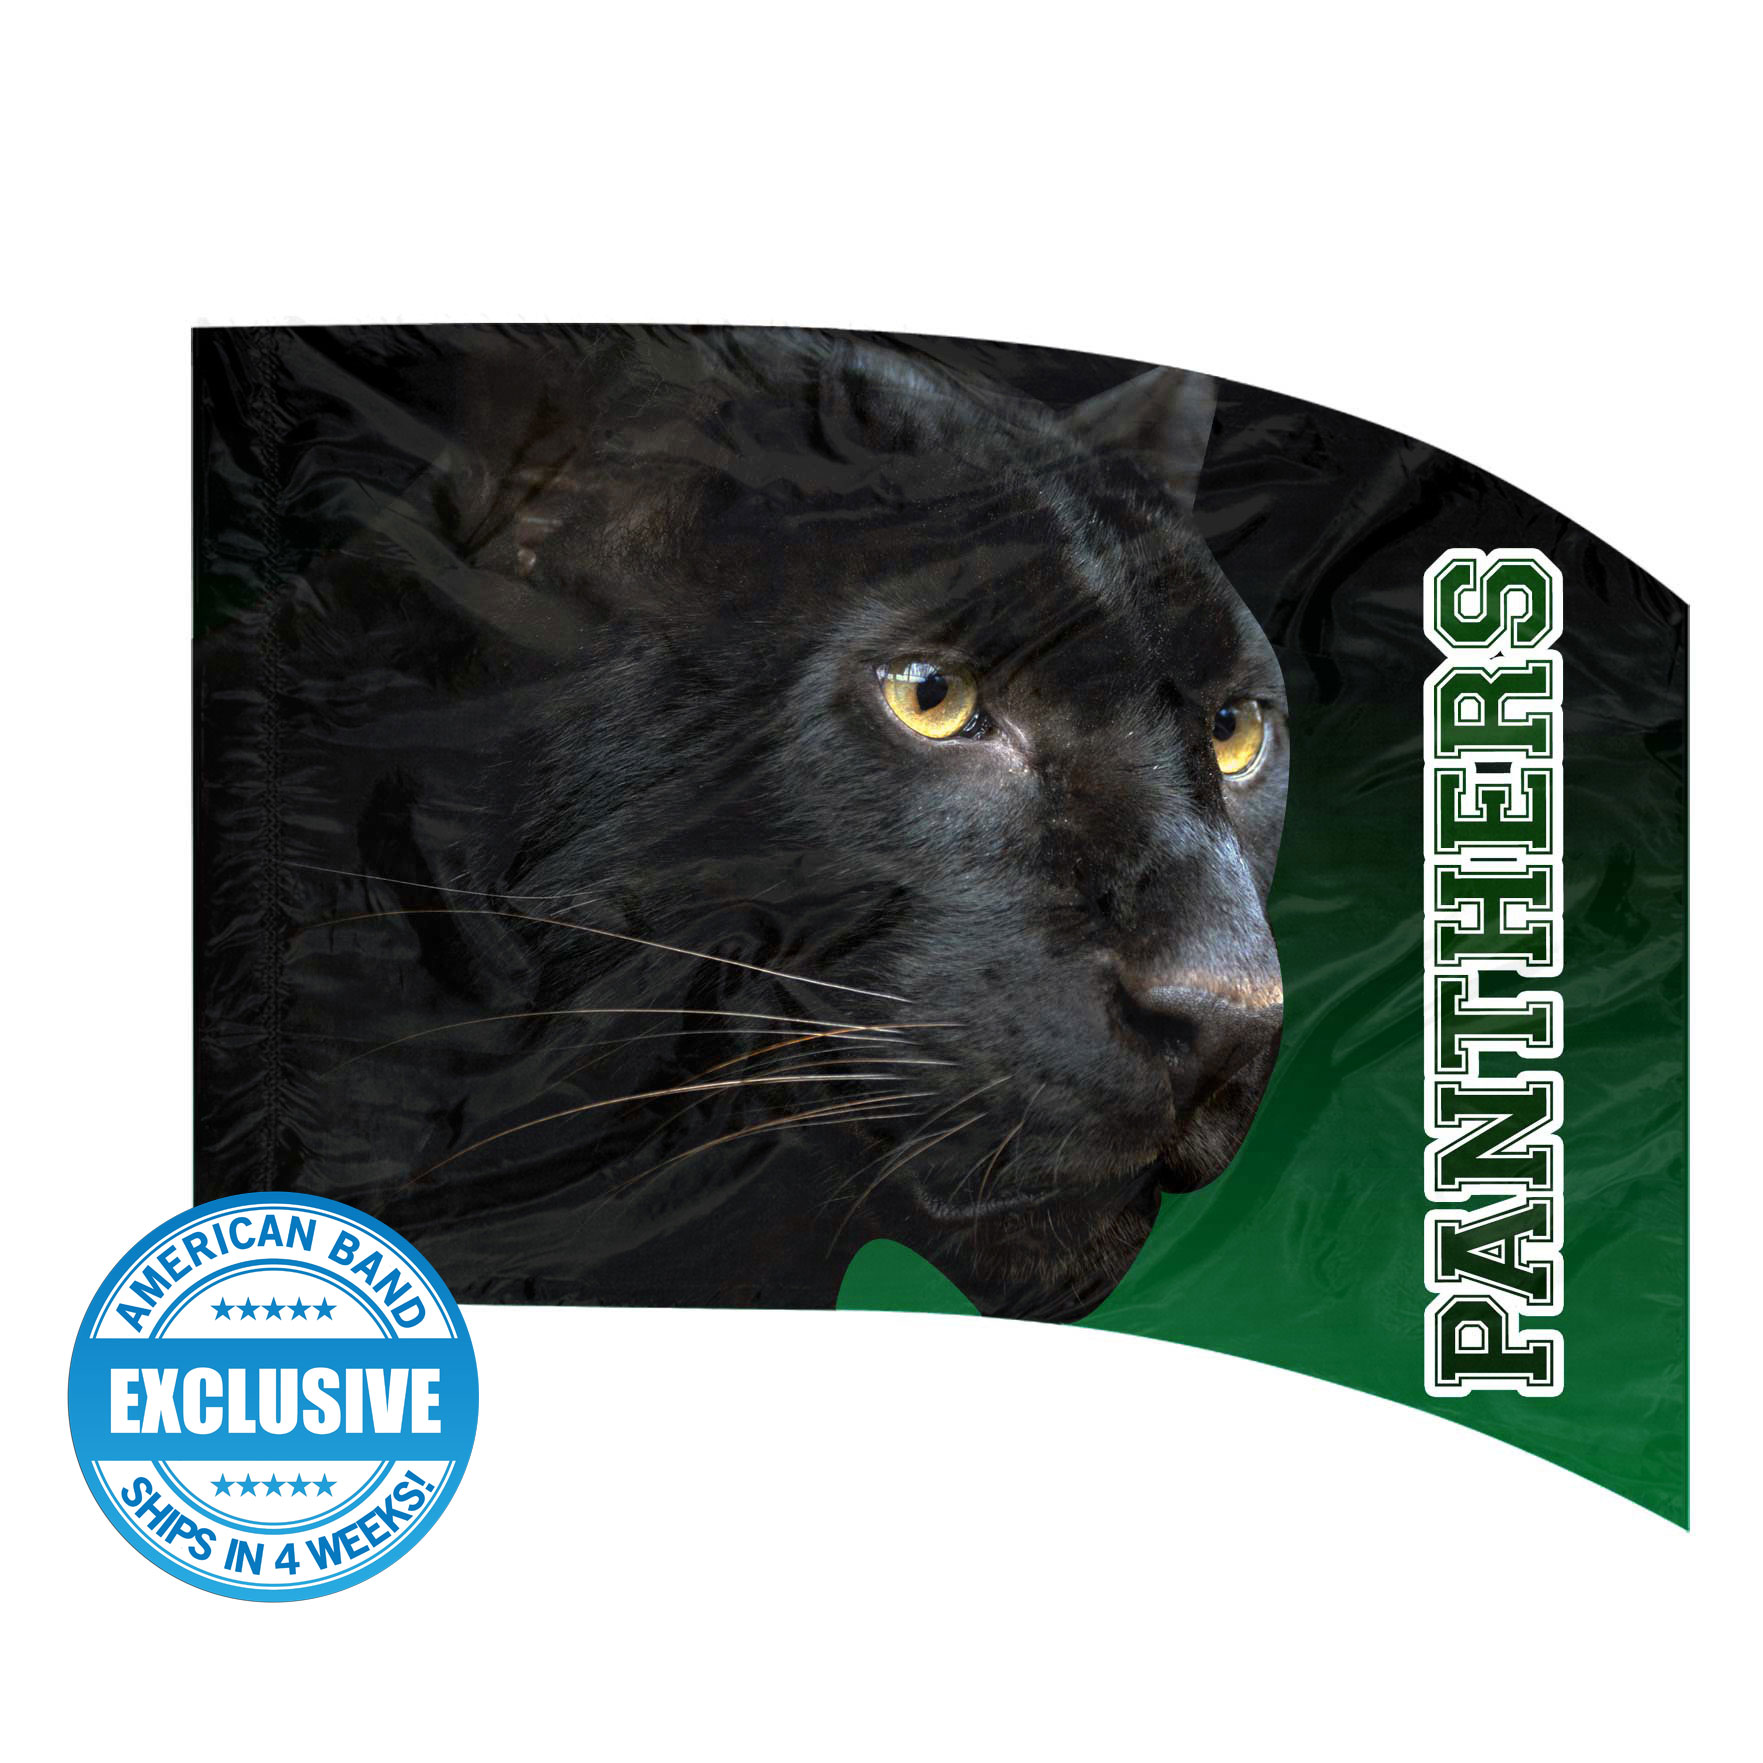 Made-to-Order Digital Mascot Flags - Panther